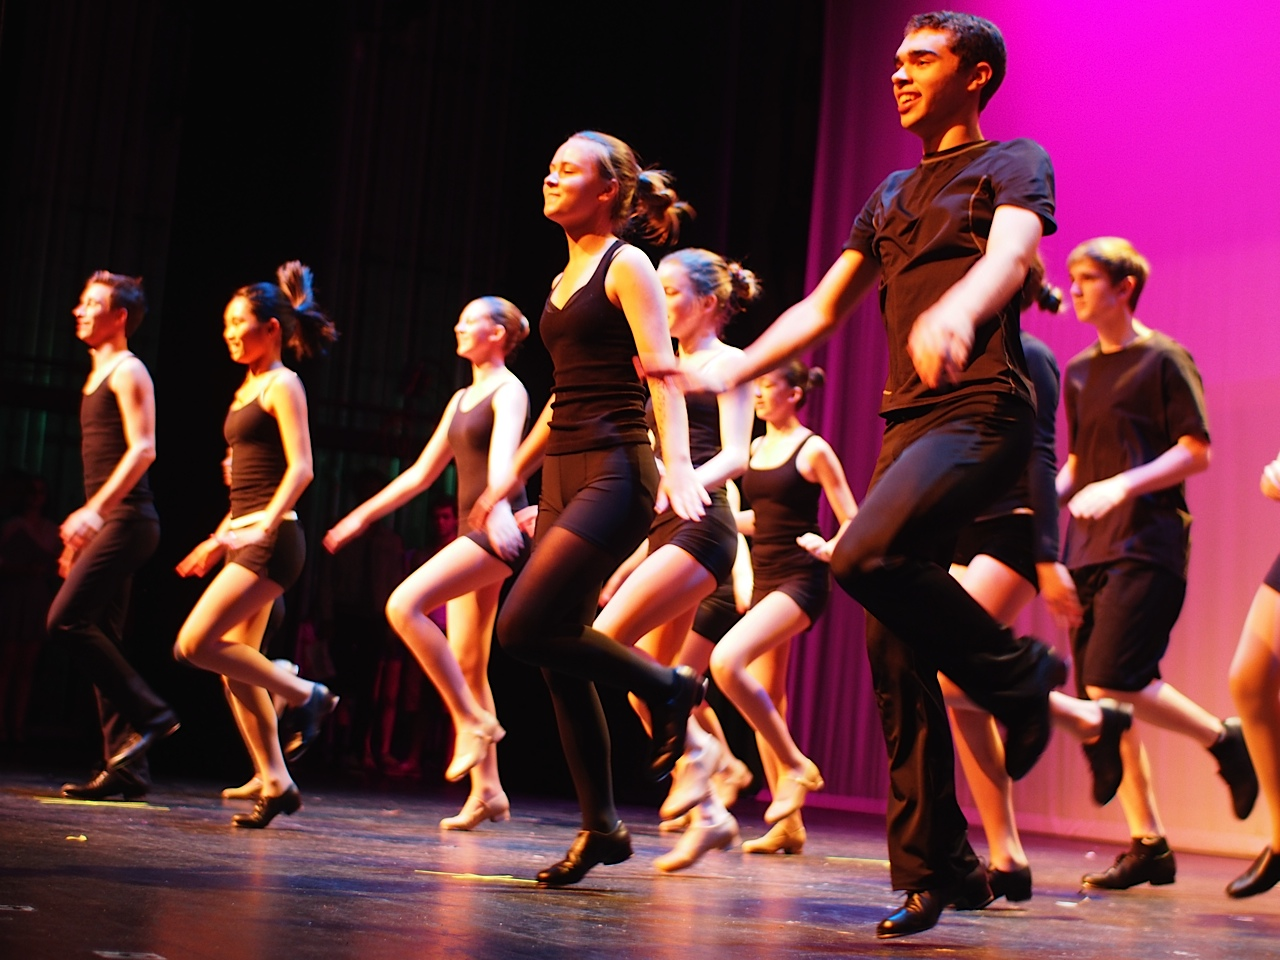 performing arts coursework Paa academy all students must successfully earn 160 high school credits or their college equivalent to graduate all courses are instructed in block format and are 80 minutes long.